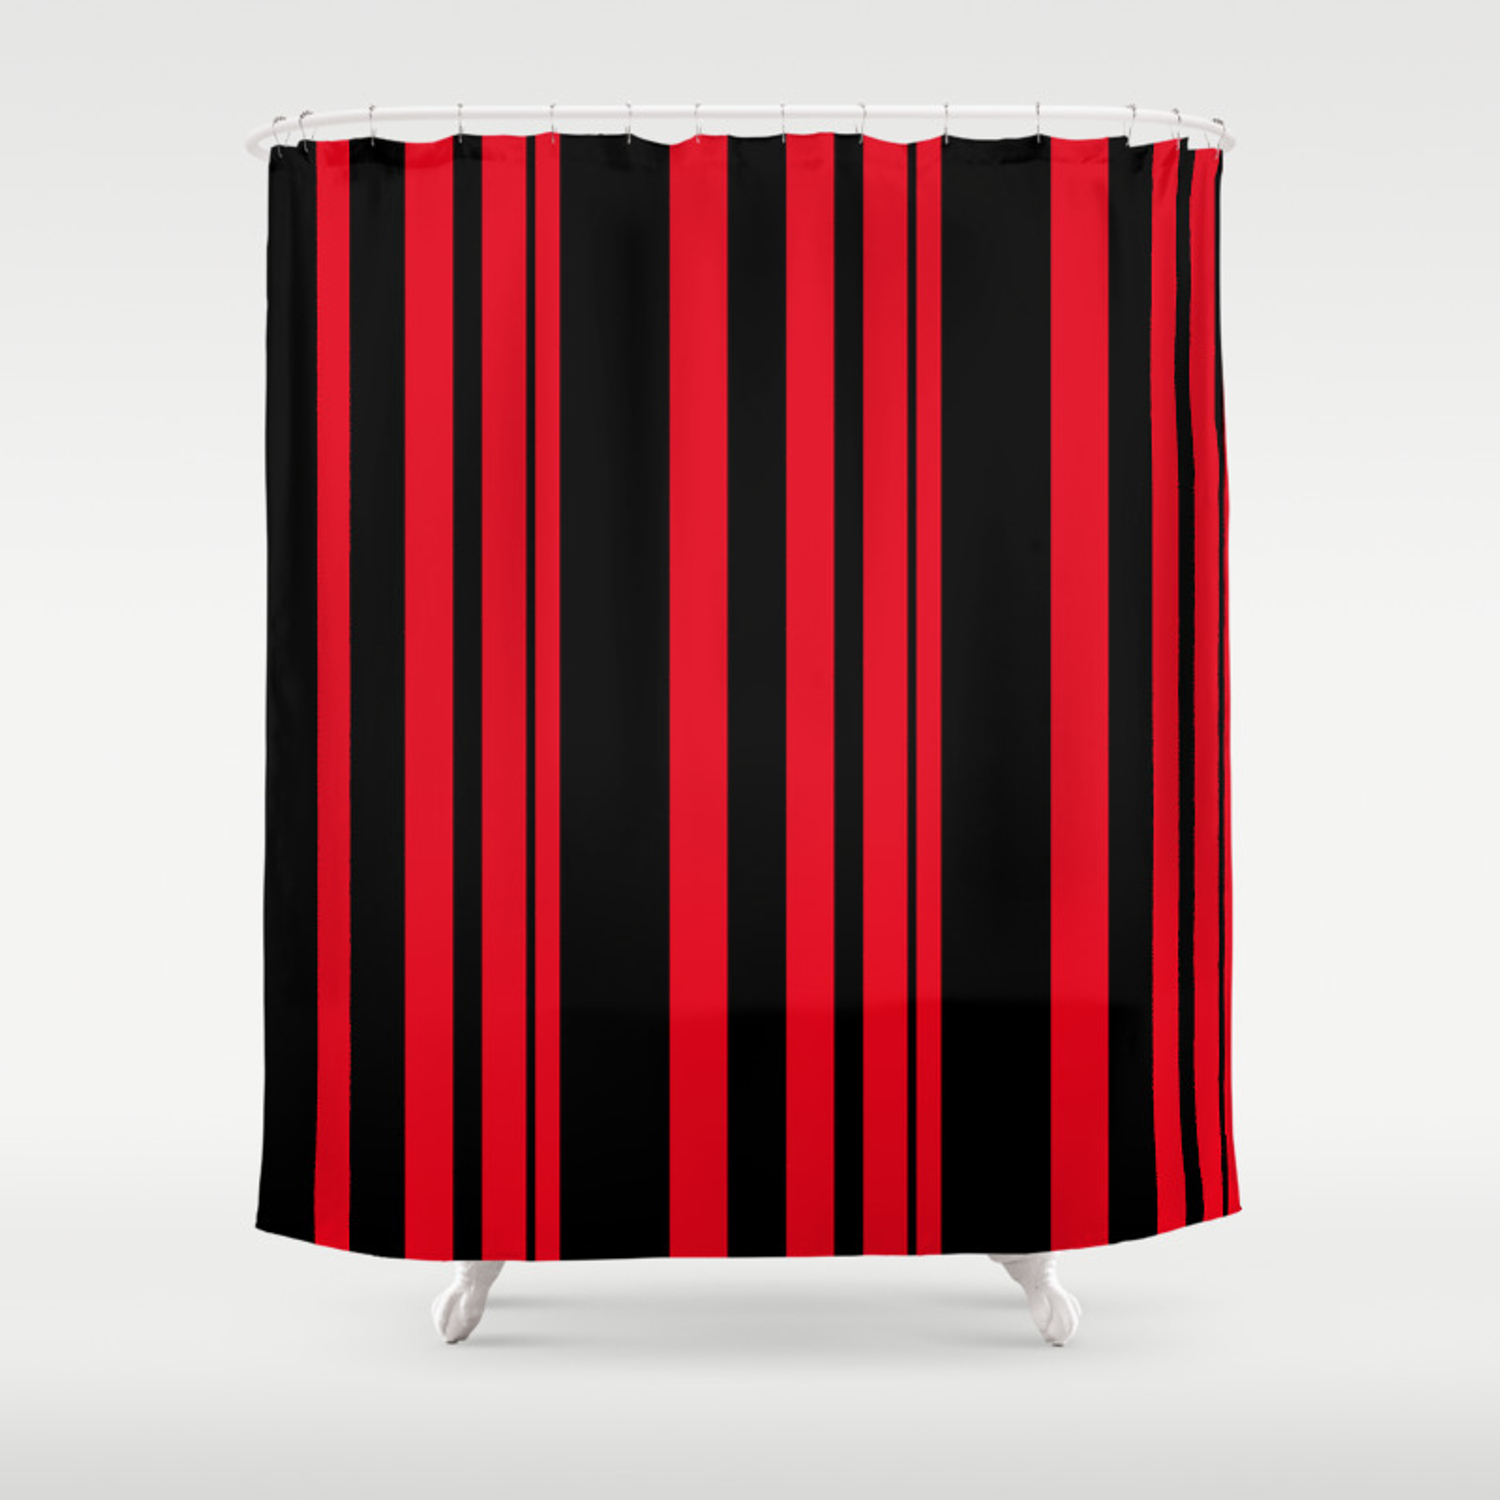 Black And Red Striped Shower Curtain